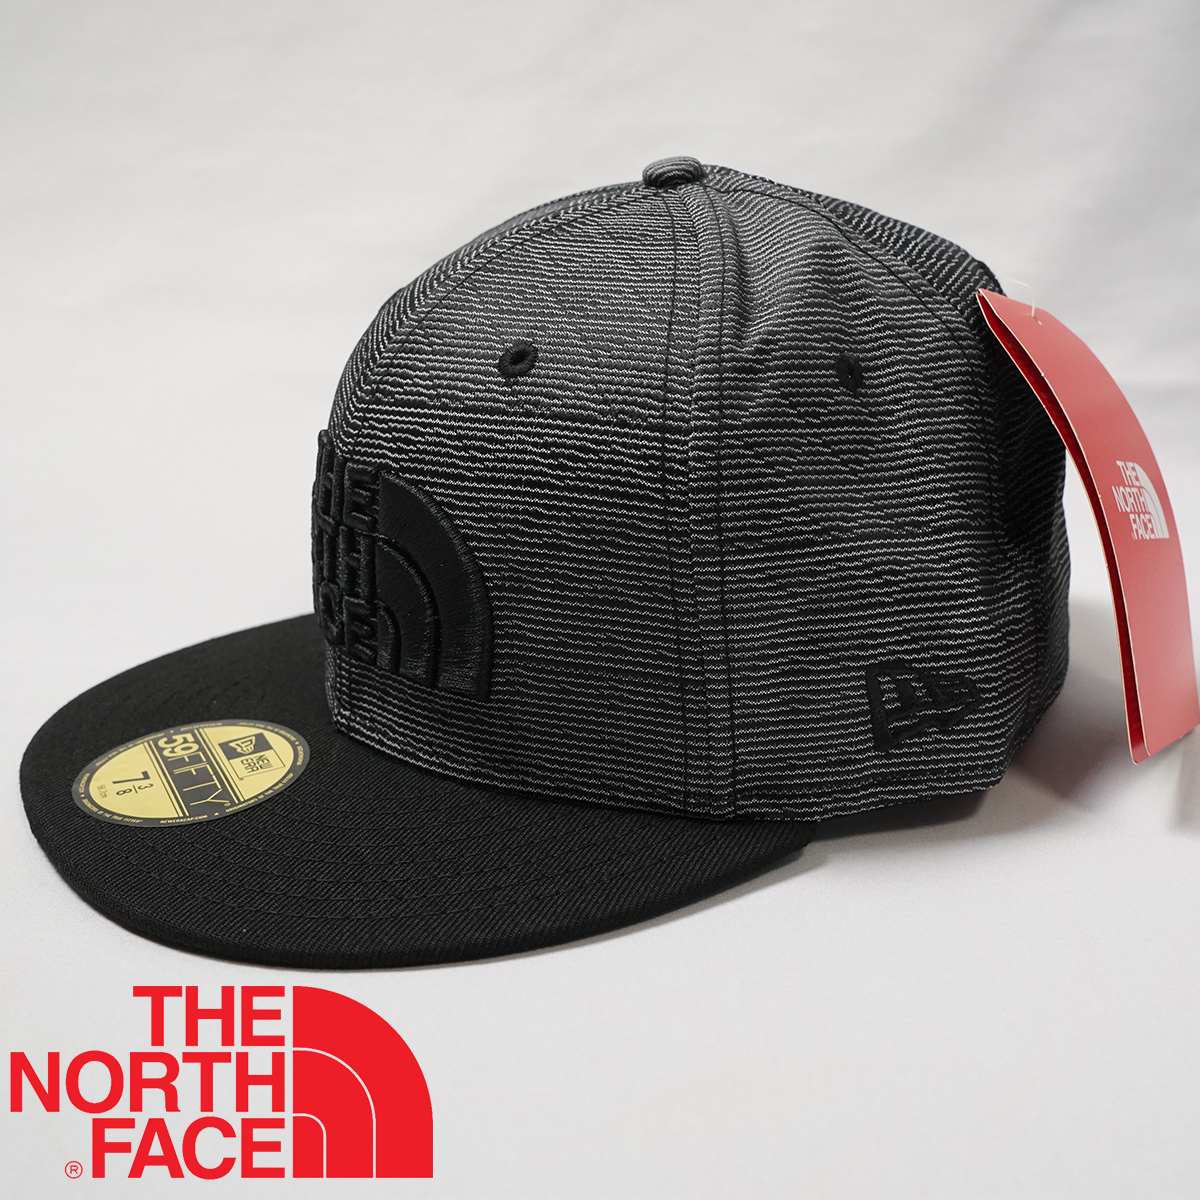 ba4ea7cb108f5  新品本物 USA購入 THE NORTH FACE ノースフェイス□NEW ERA 59FIFTY FITTED